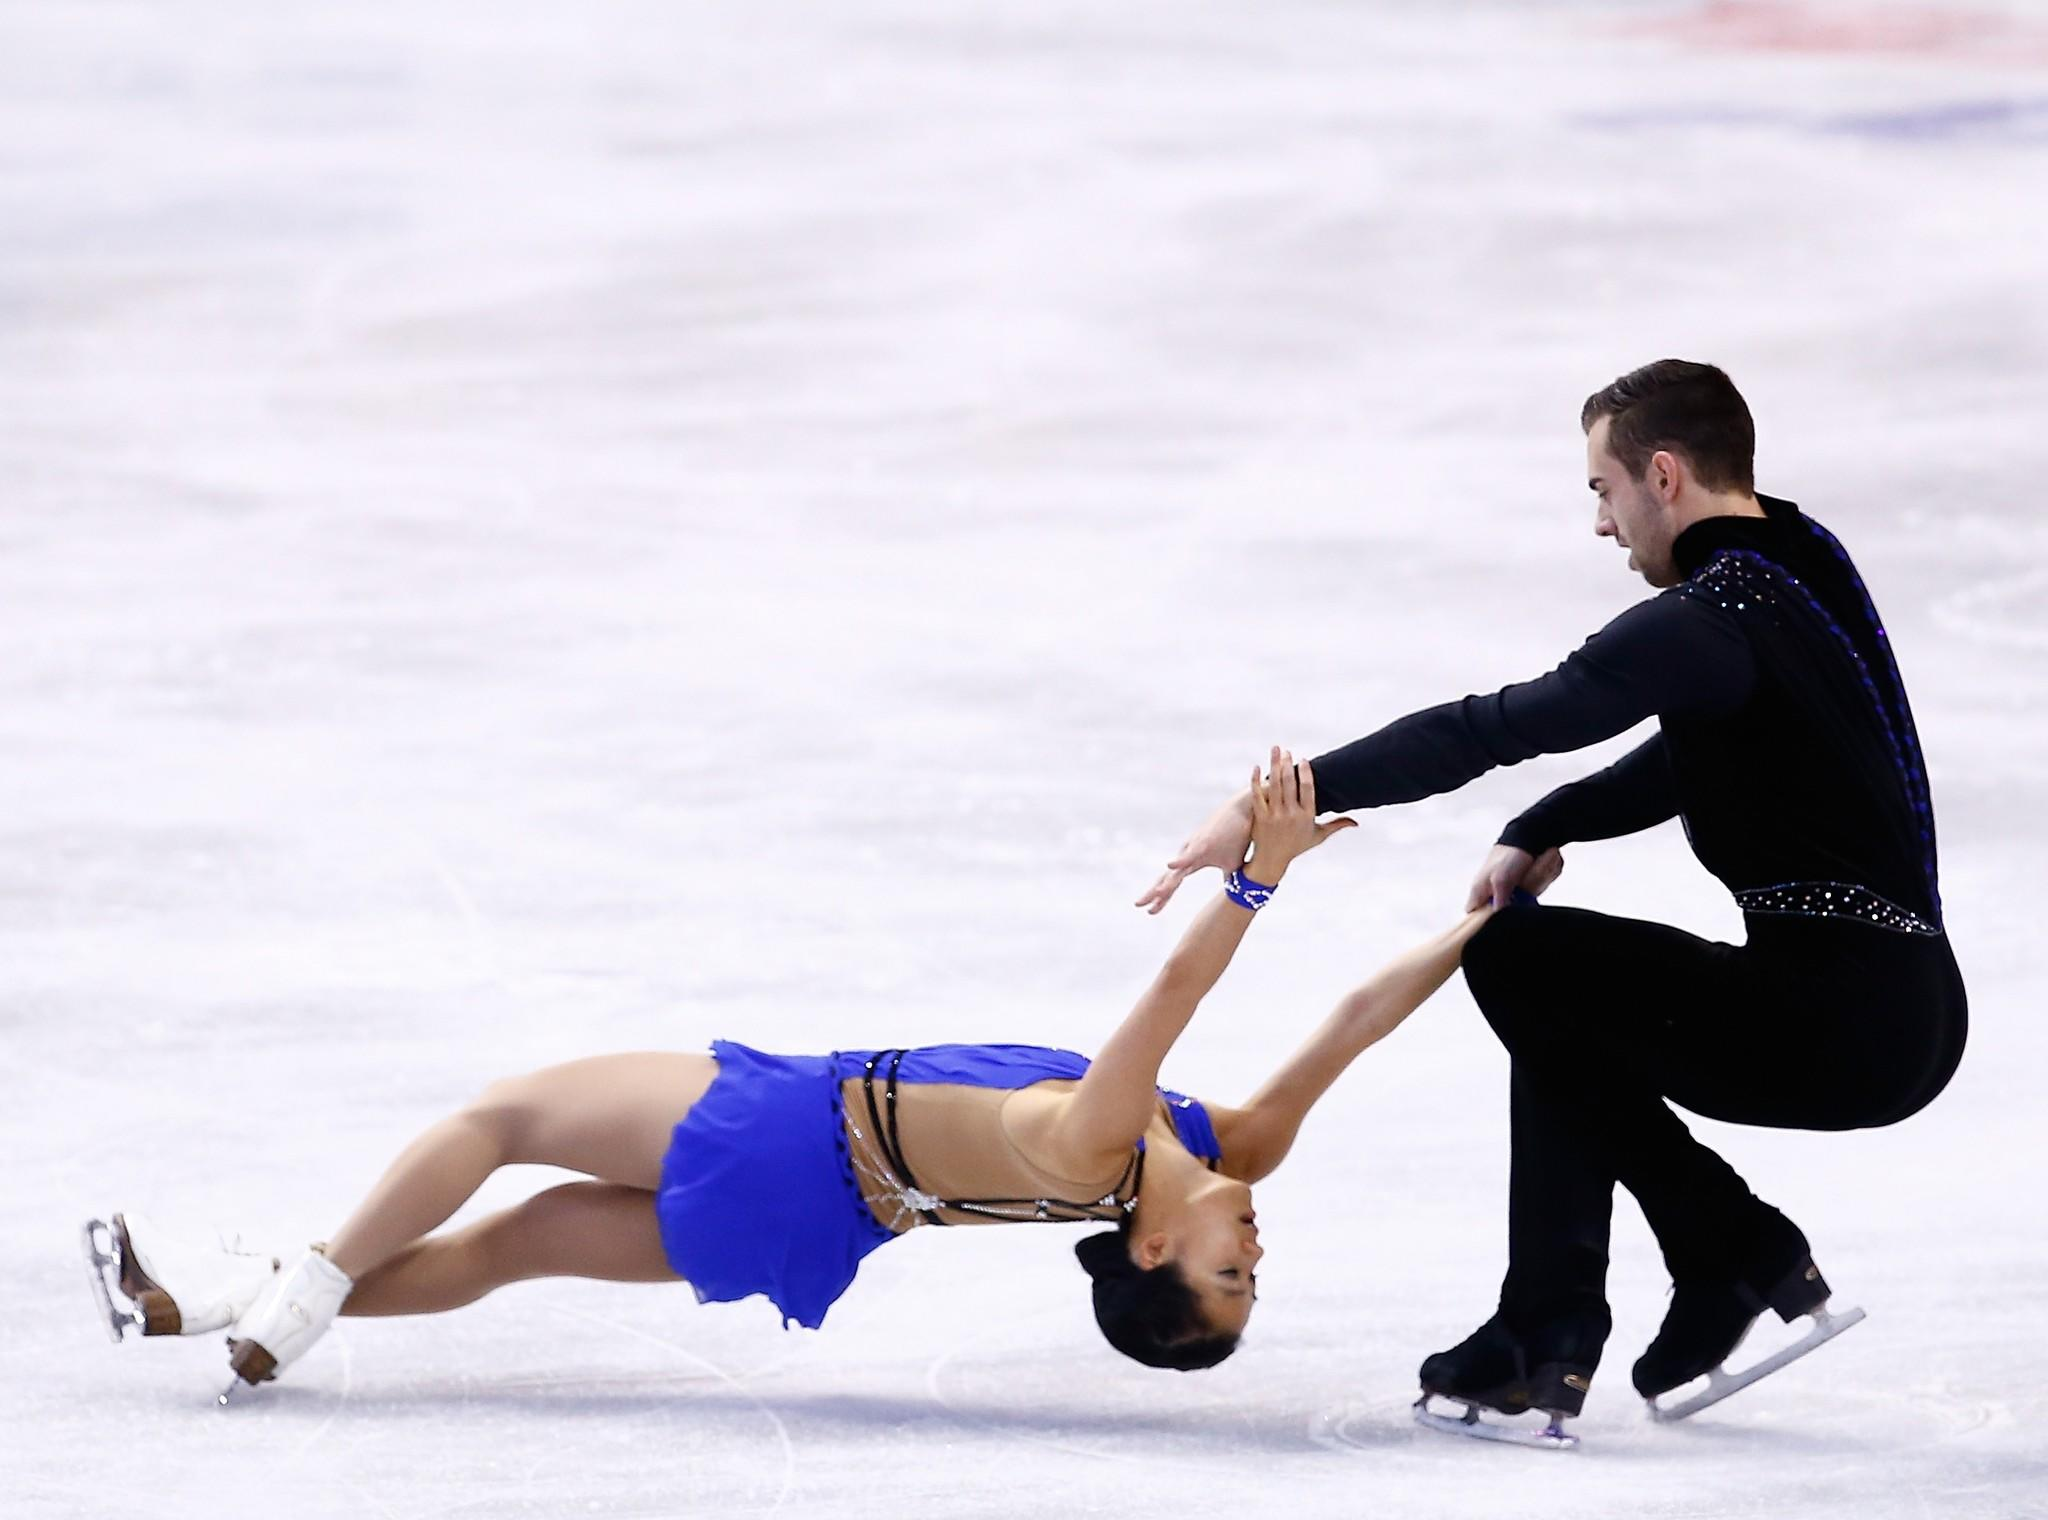 DeeDee Leng and Timothy LeDuc finishing third in the short program at the U.S. Championships Thursday at TD Garden.